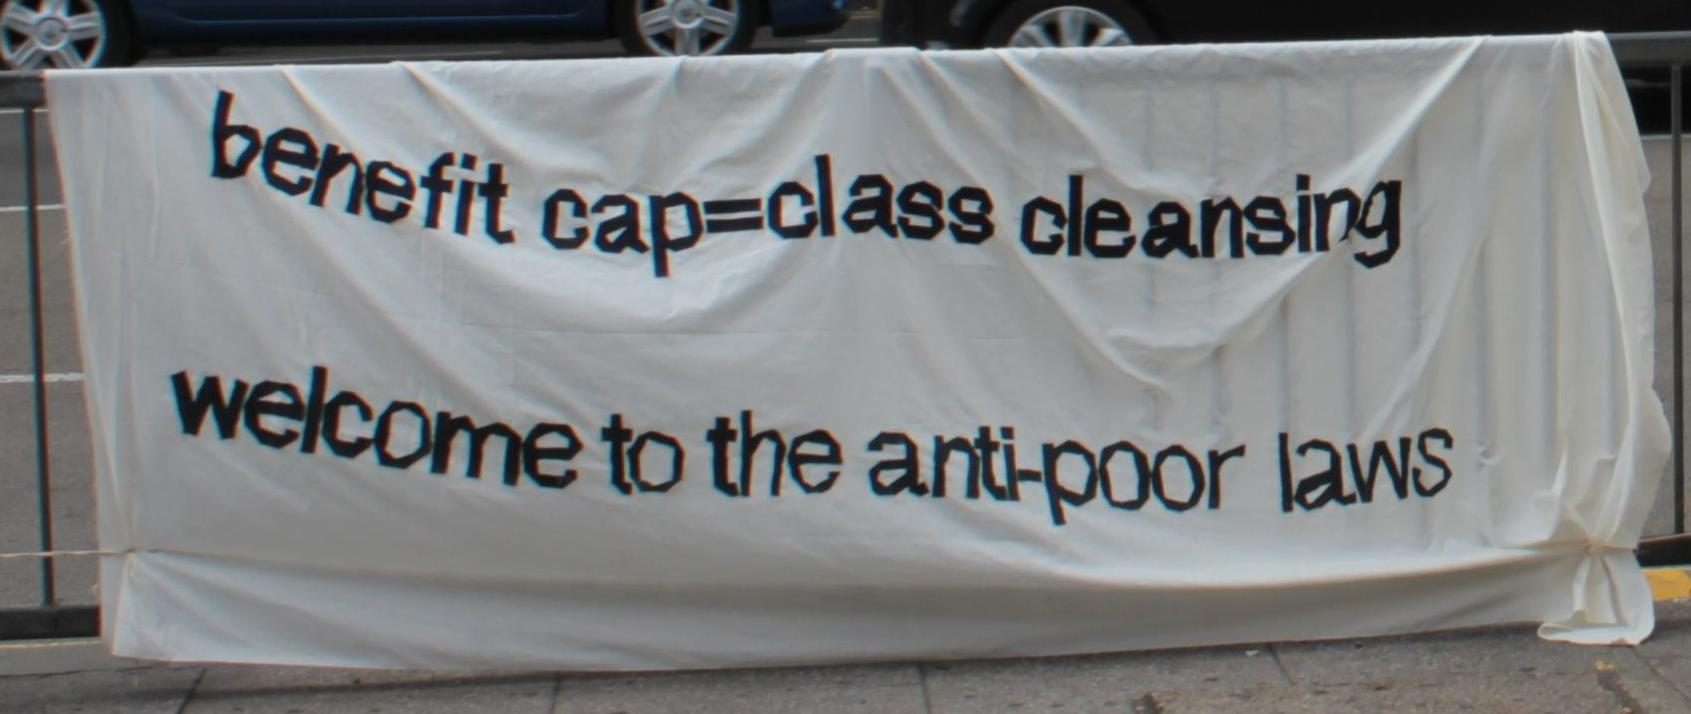 Benefit cap equals class cleansing